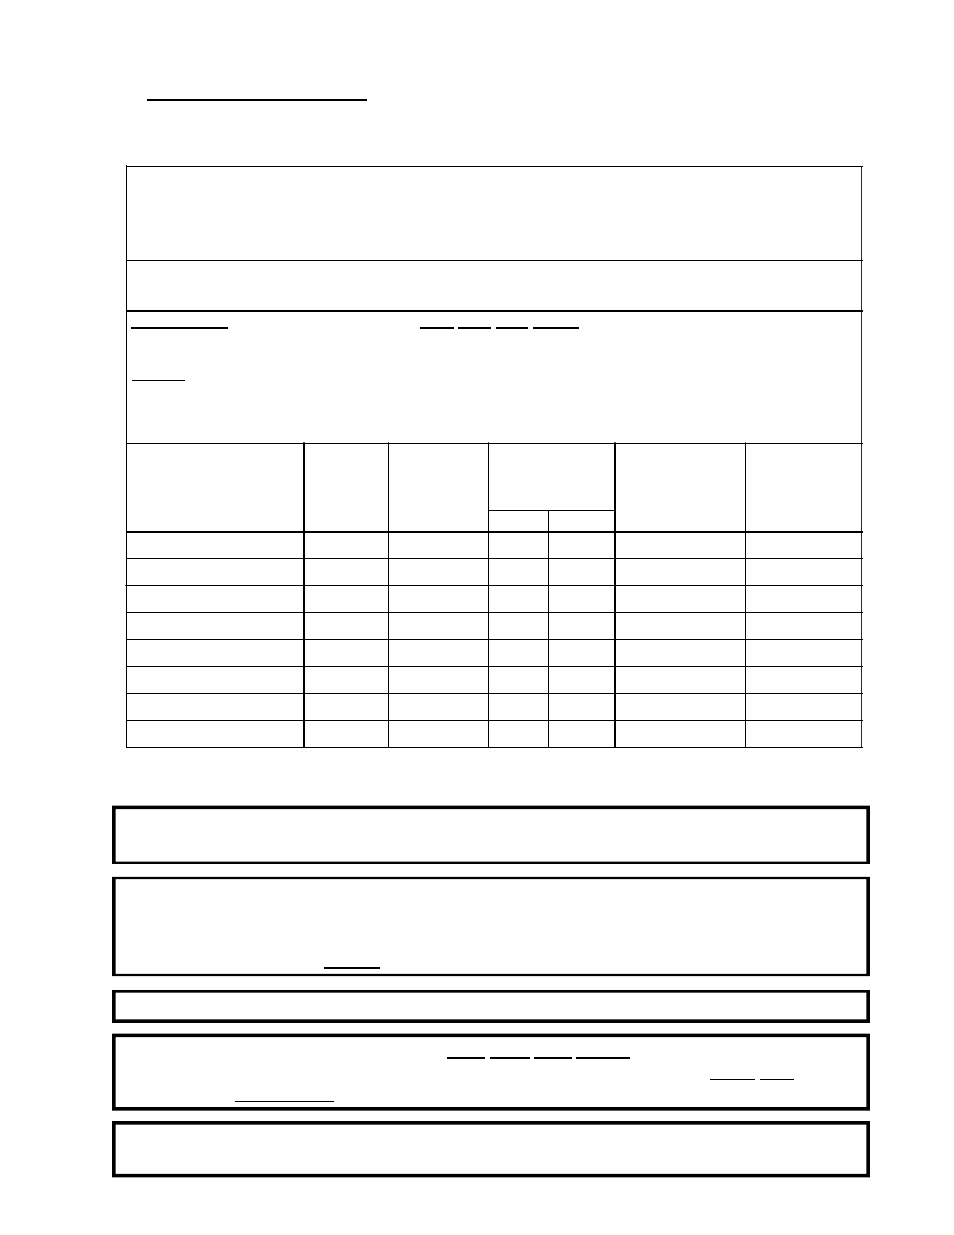 hight resolution of mlg 55 gas mls 55 steam american dryer corp gas electric steam ml 55hs user manual page 23 56